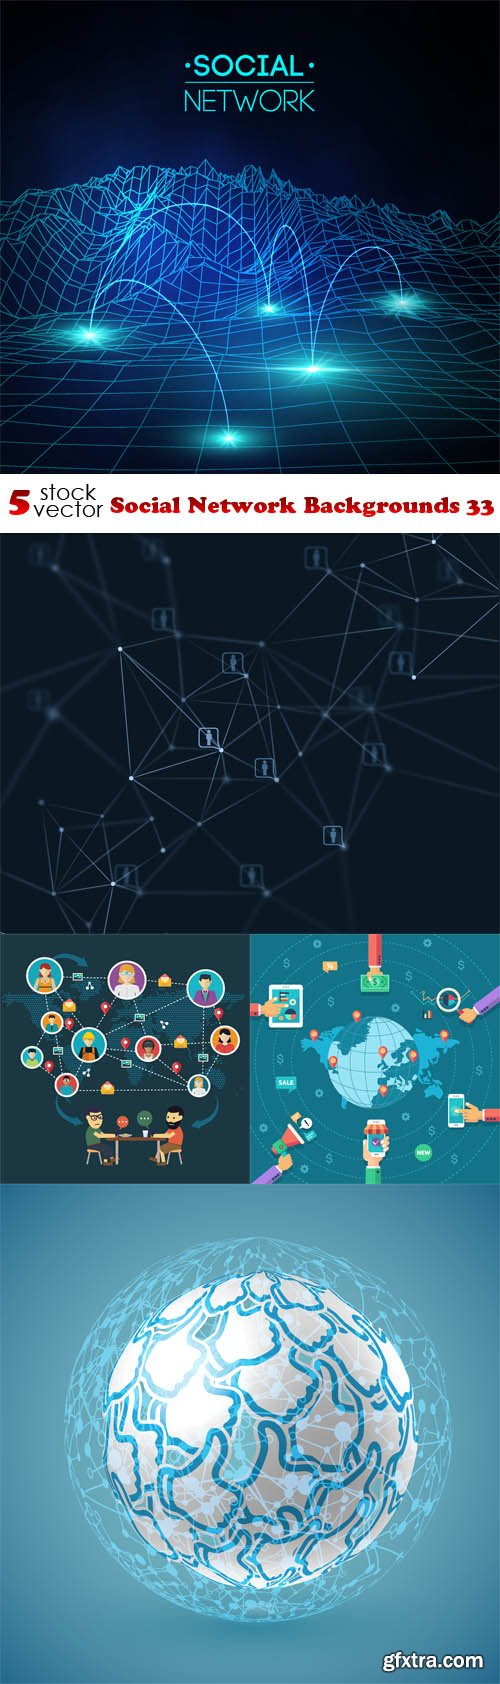 Vectors - Social Network Backgrounds 33